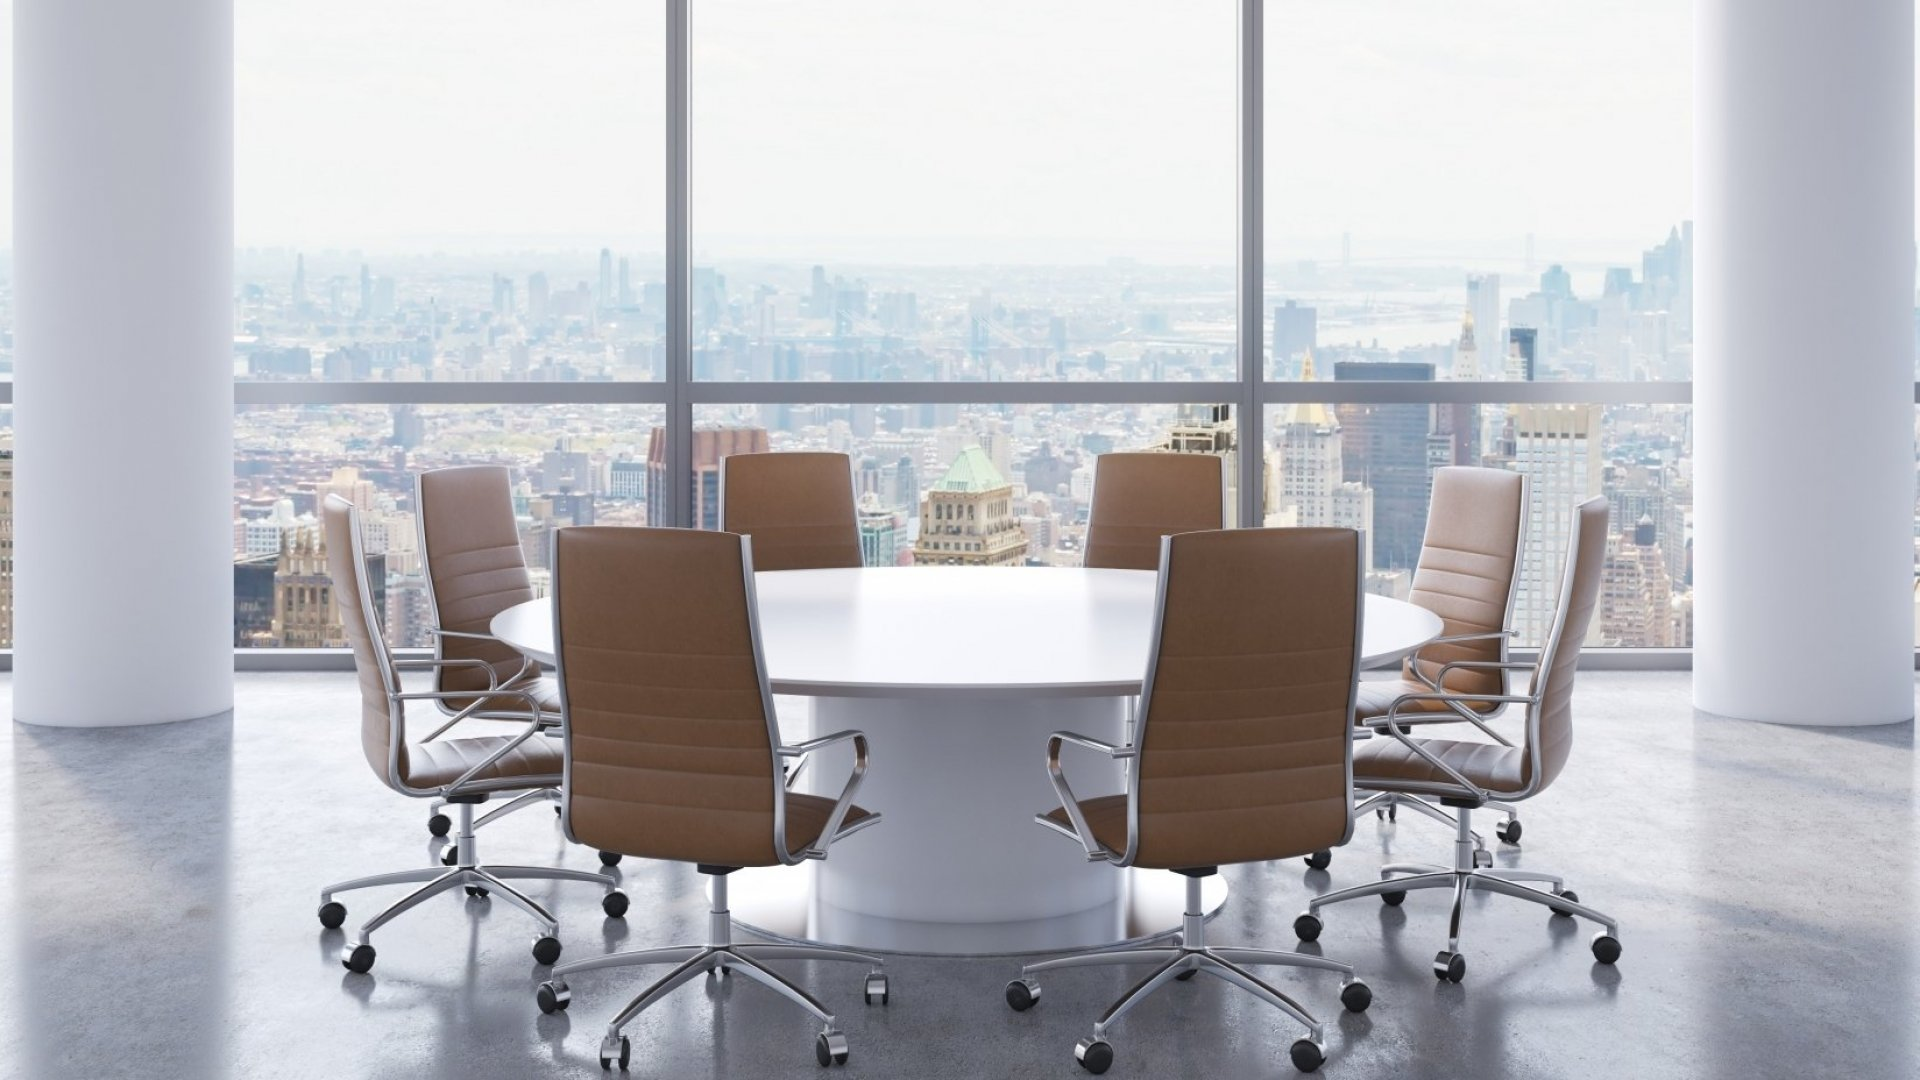 5 Fatal Mistakes That Entrepreneurs Make When Forming a Corporate Board